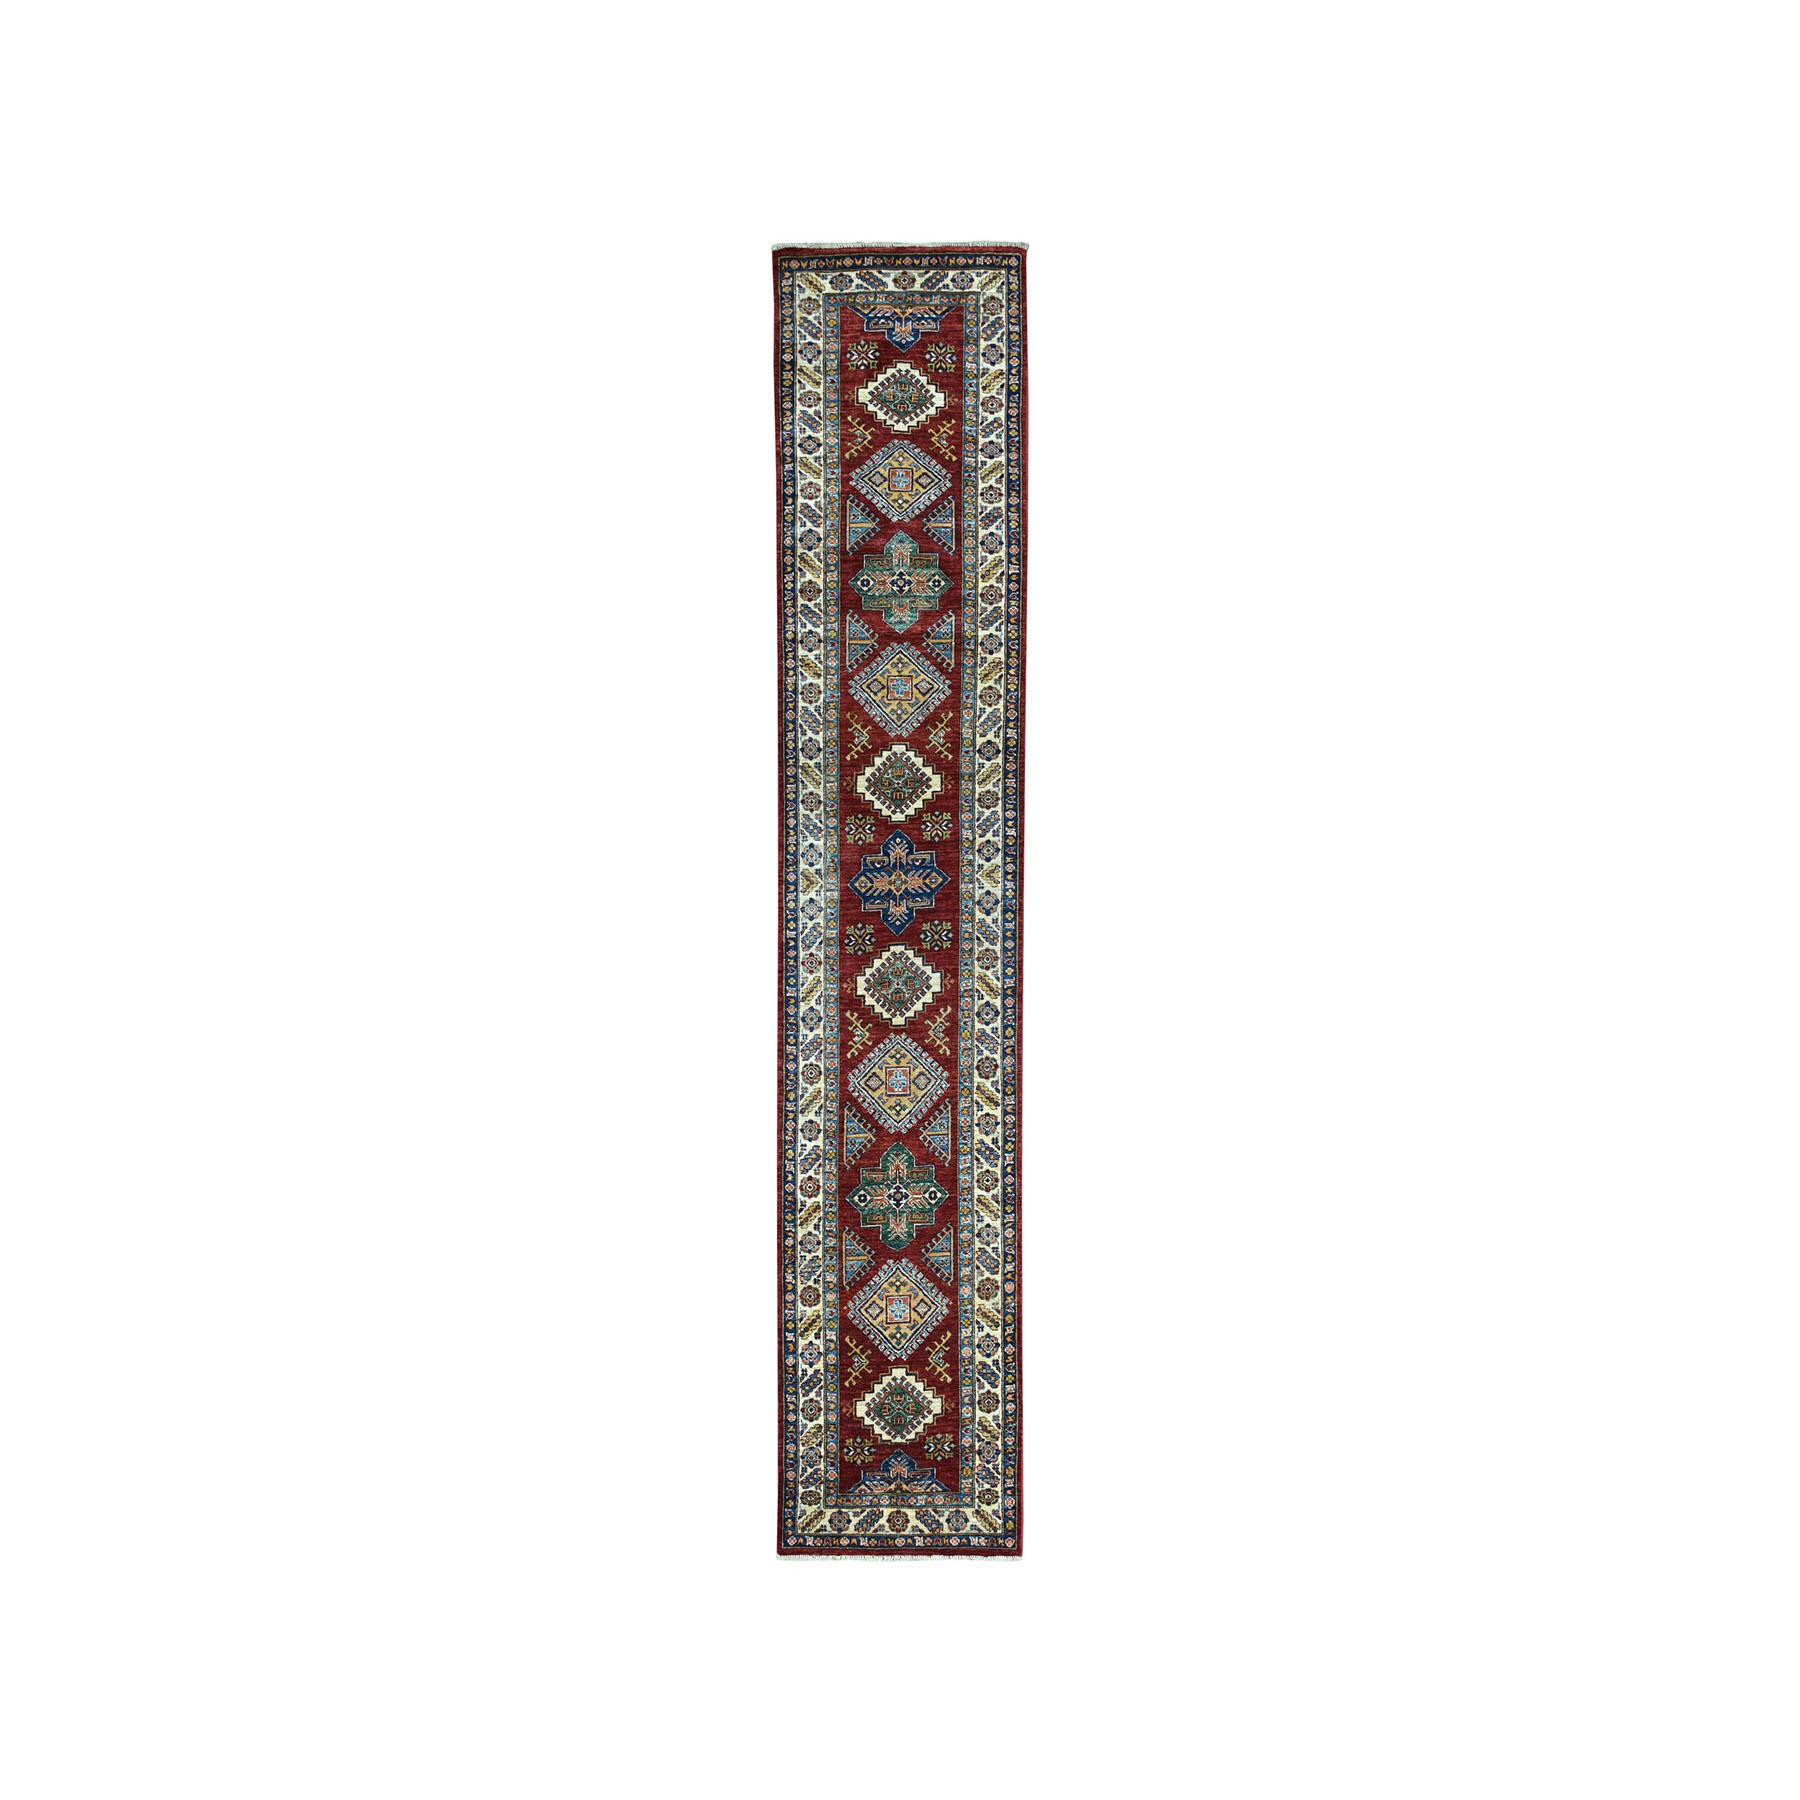 "2'4""X10'10"" Red Super Kazak Pure Wool Geometric Design Hand-Knotted Runner Oriental Rug moae08b0"